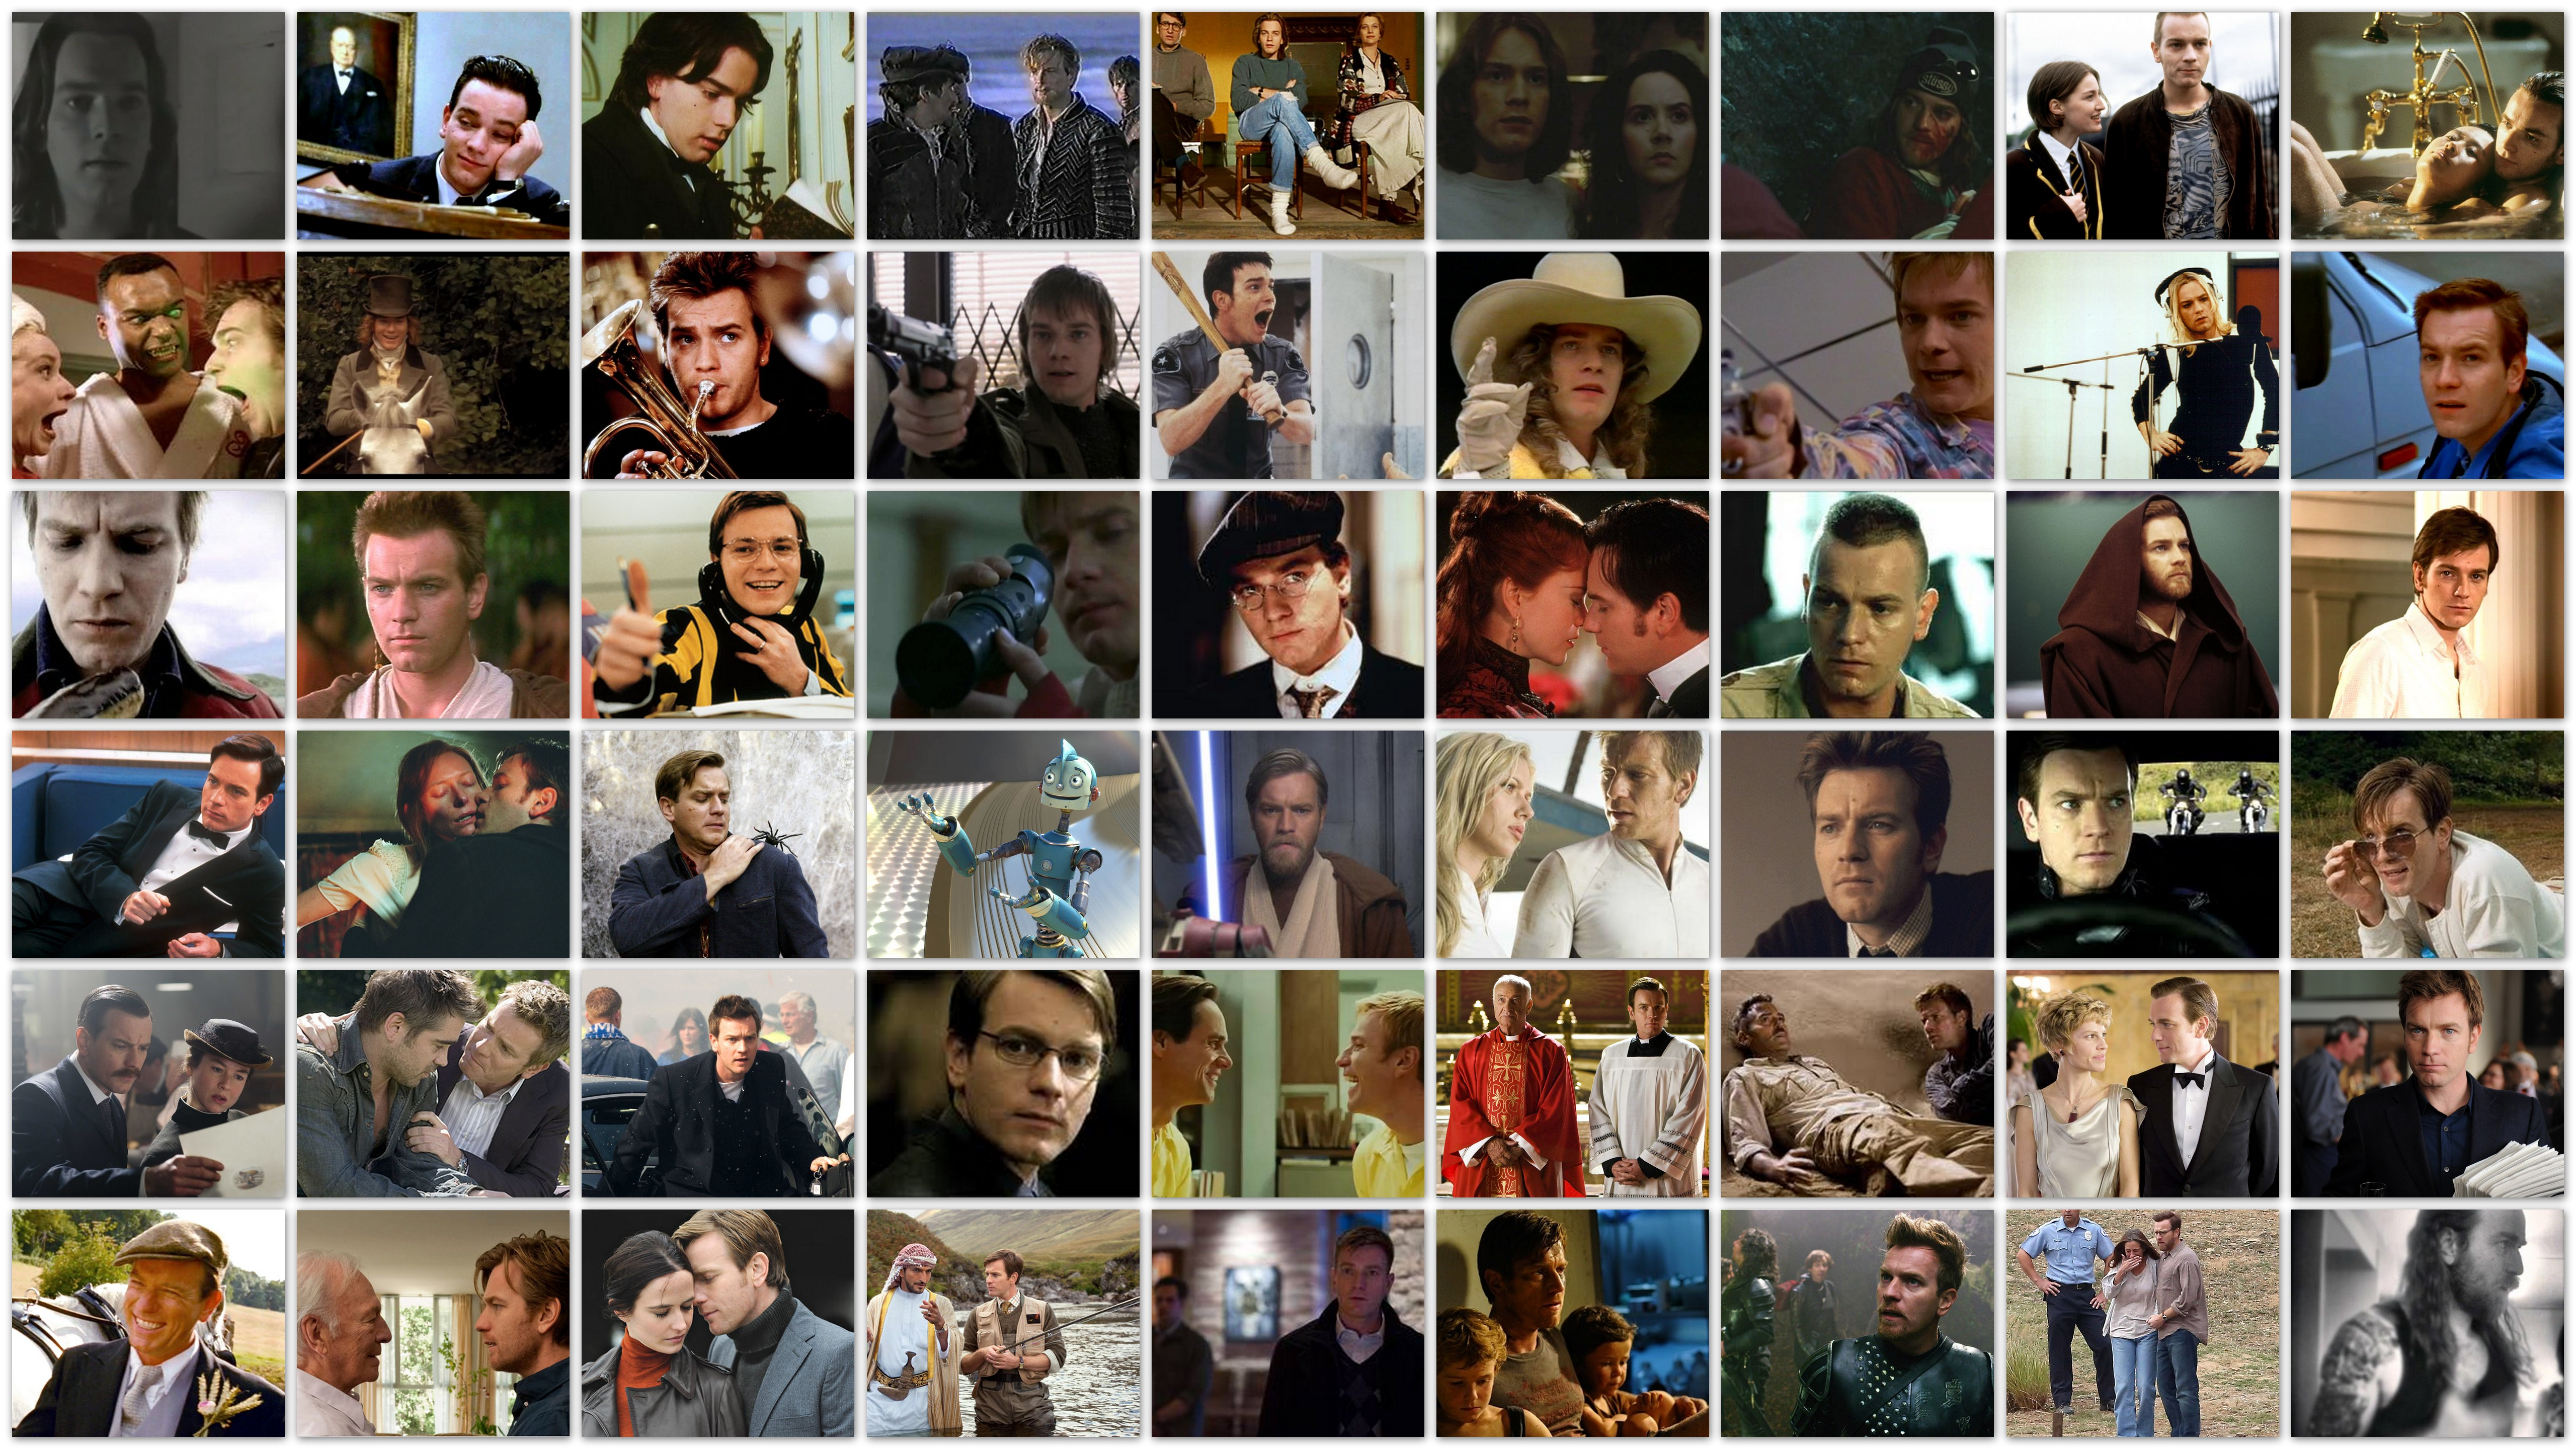 Overview in pictures of the roles of actor Ewan McGregor in his movie career